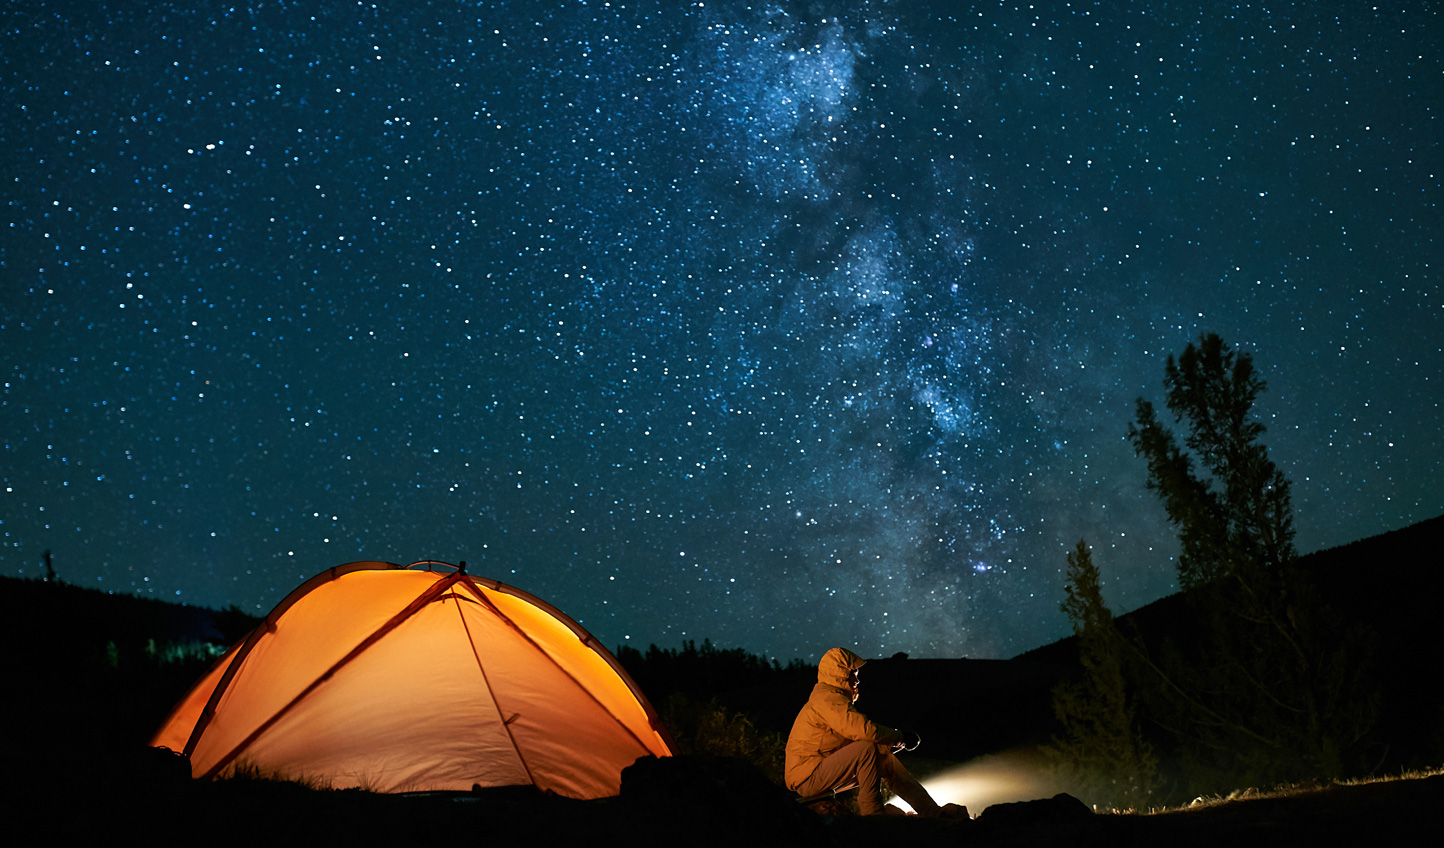 Luxury private camping under a sky full of stars